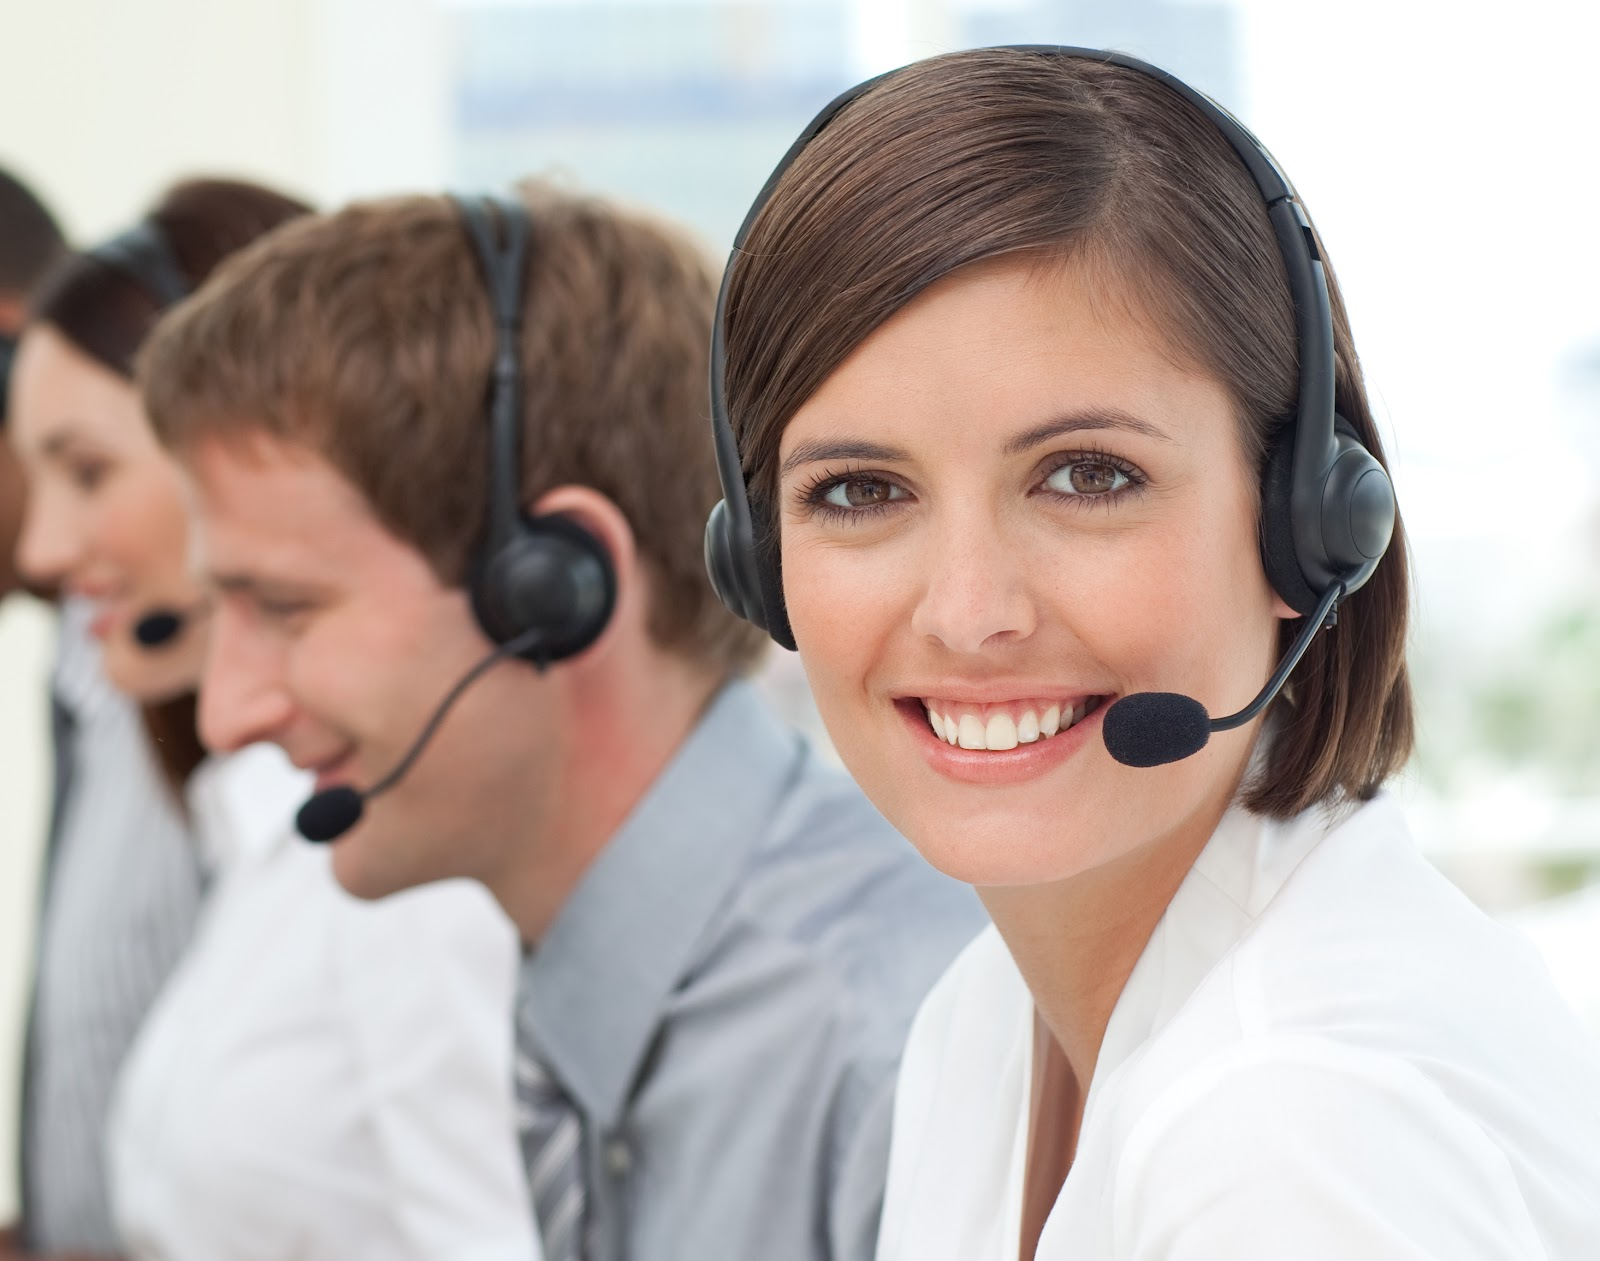 Smiling woman with a headset on.